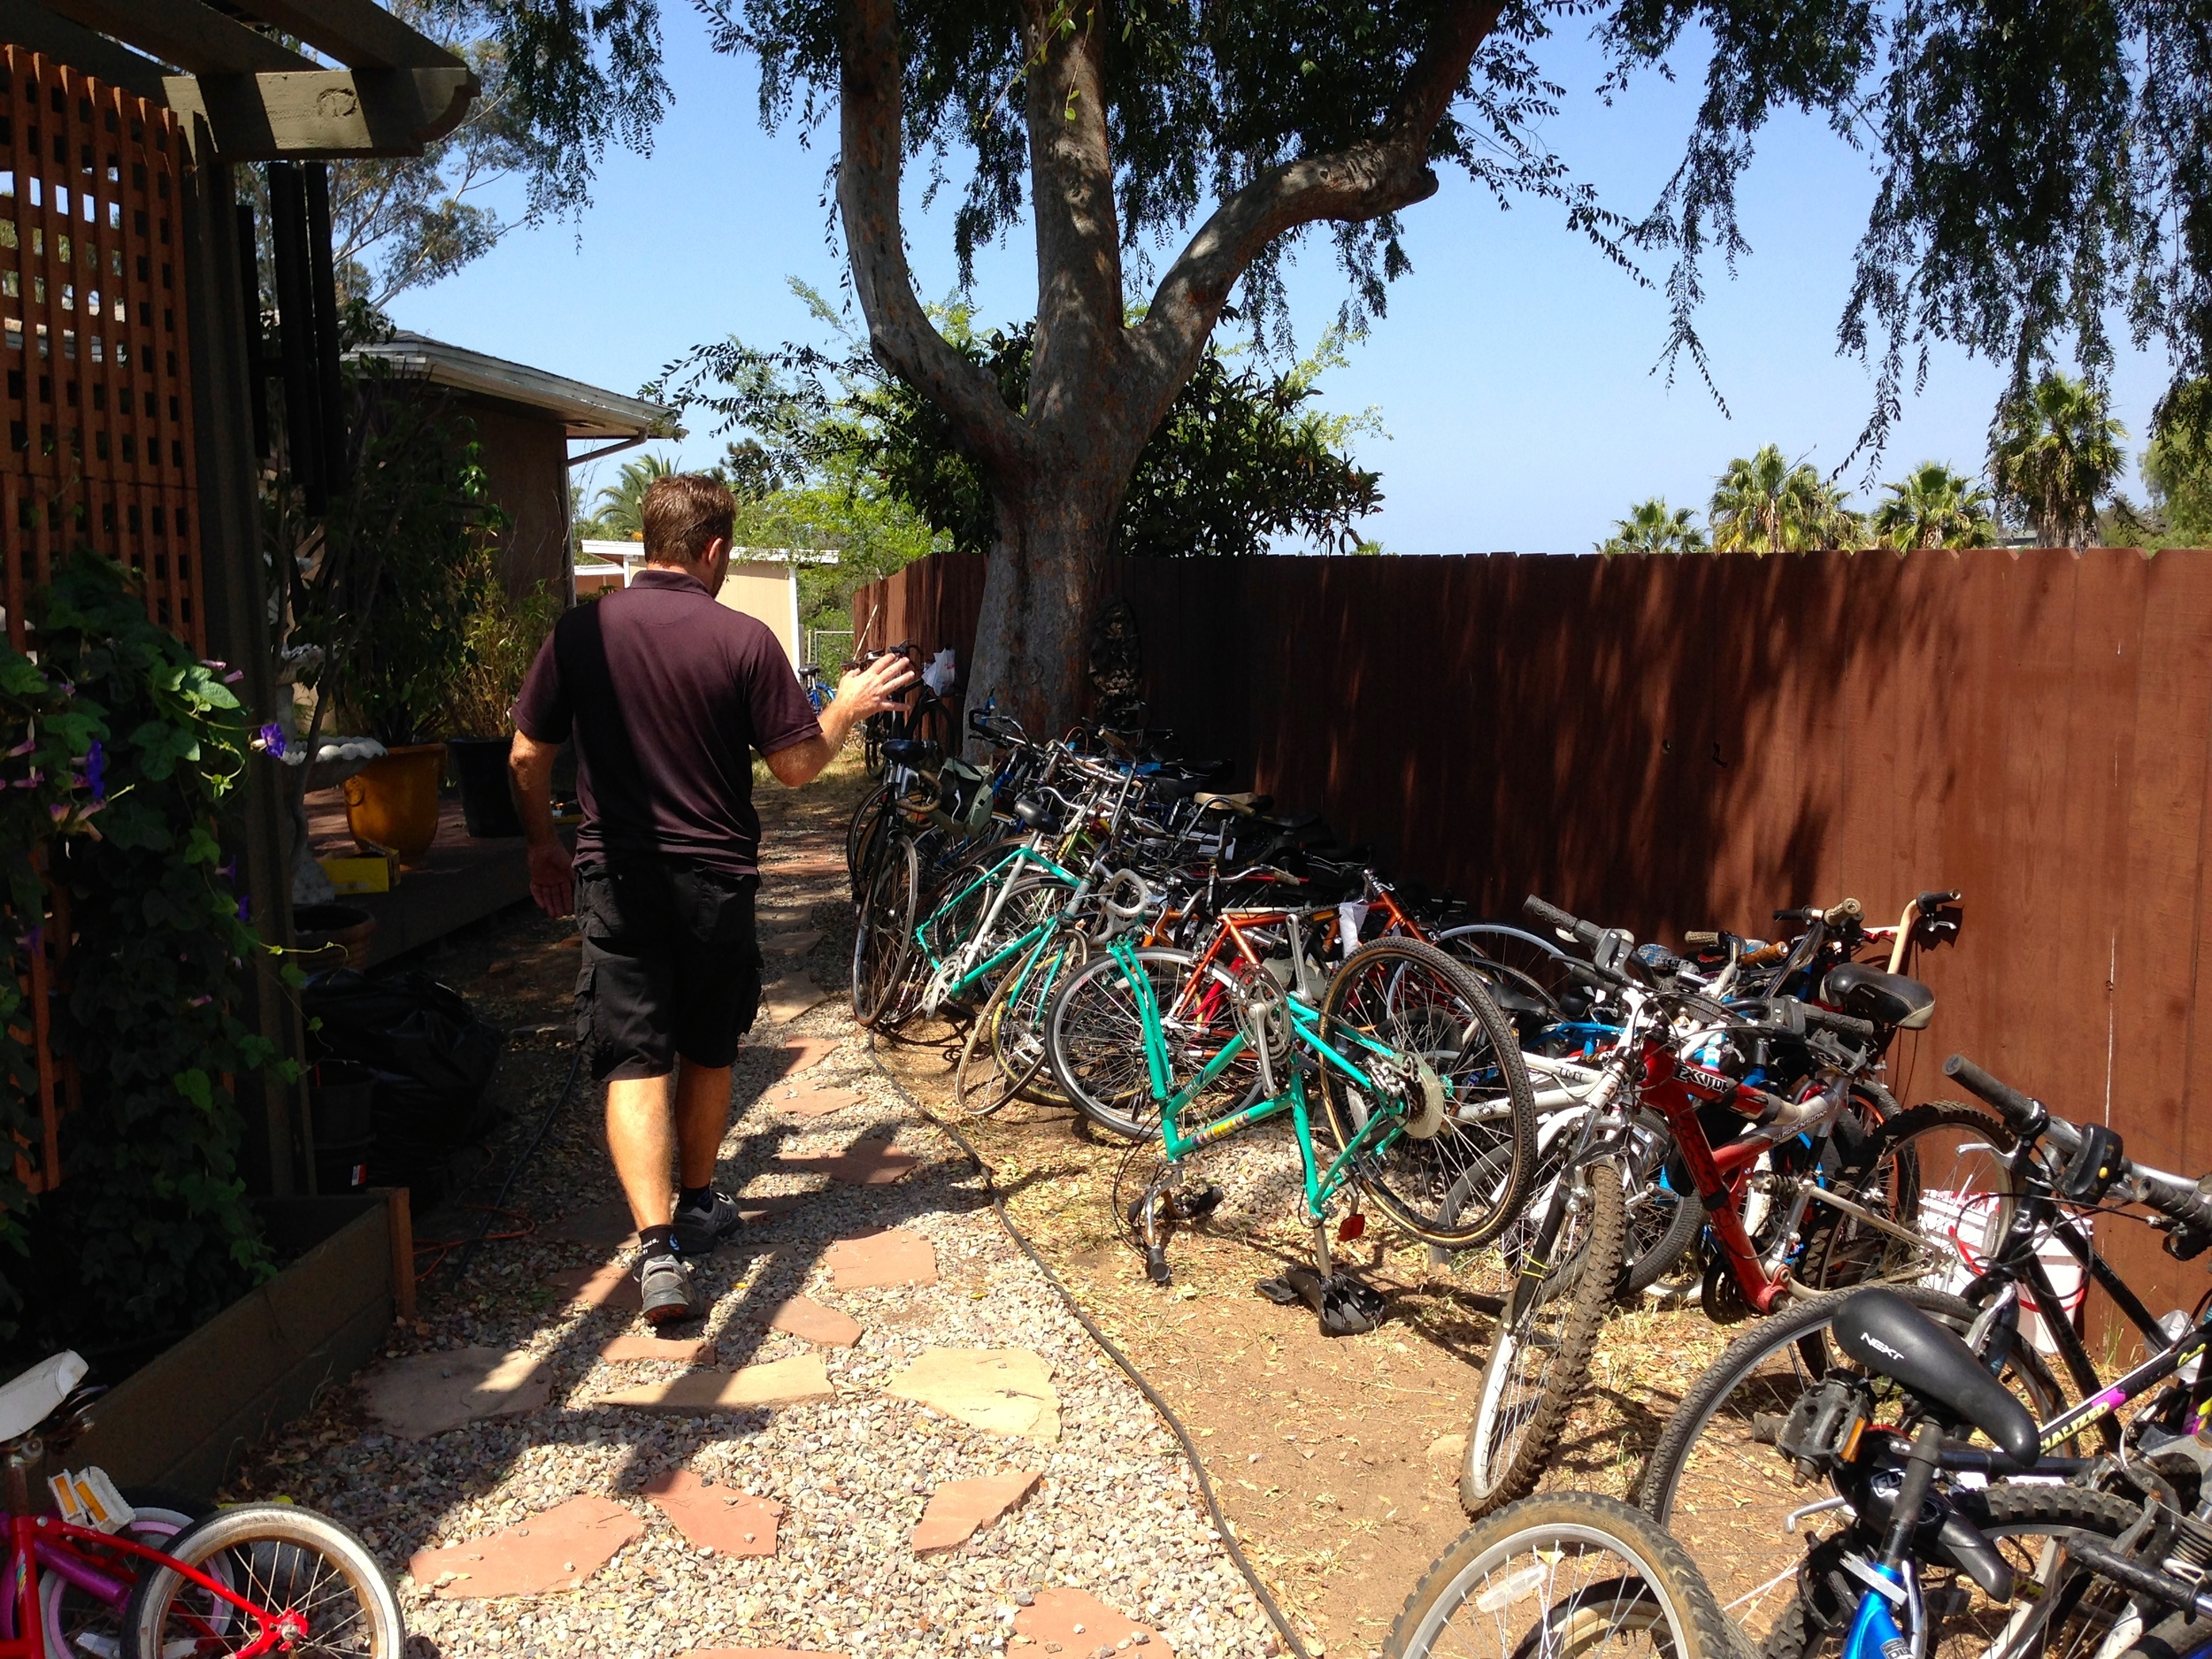 Mike giving a tour of the donation bike piles.